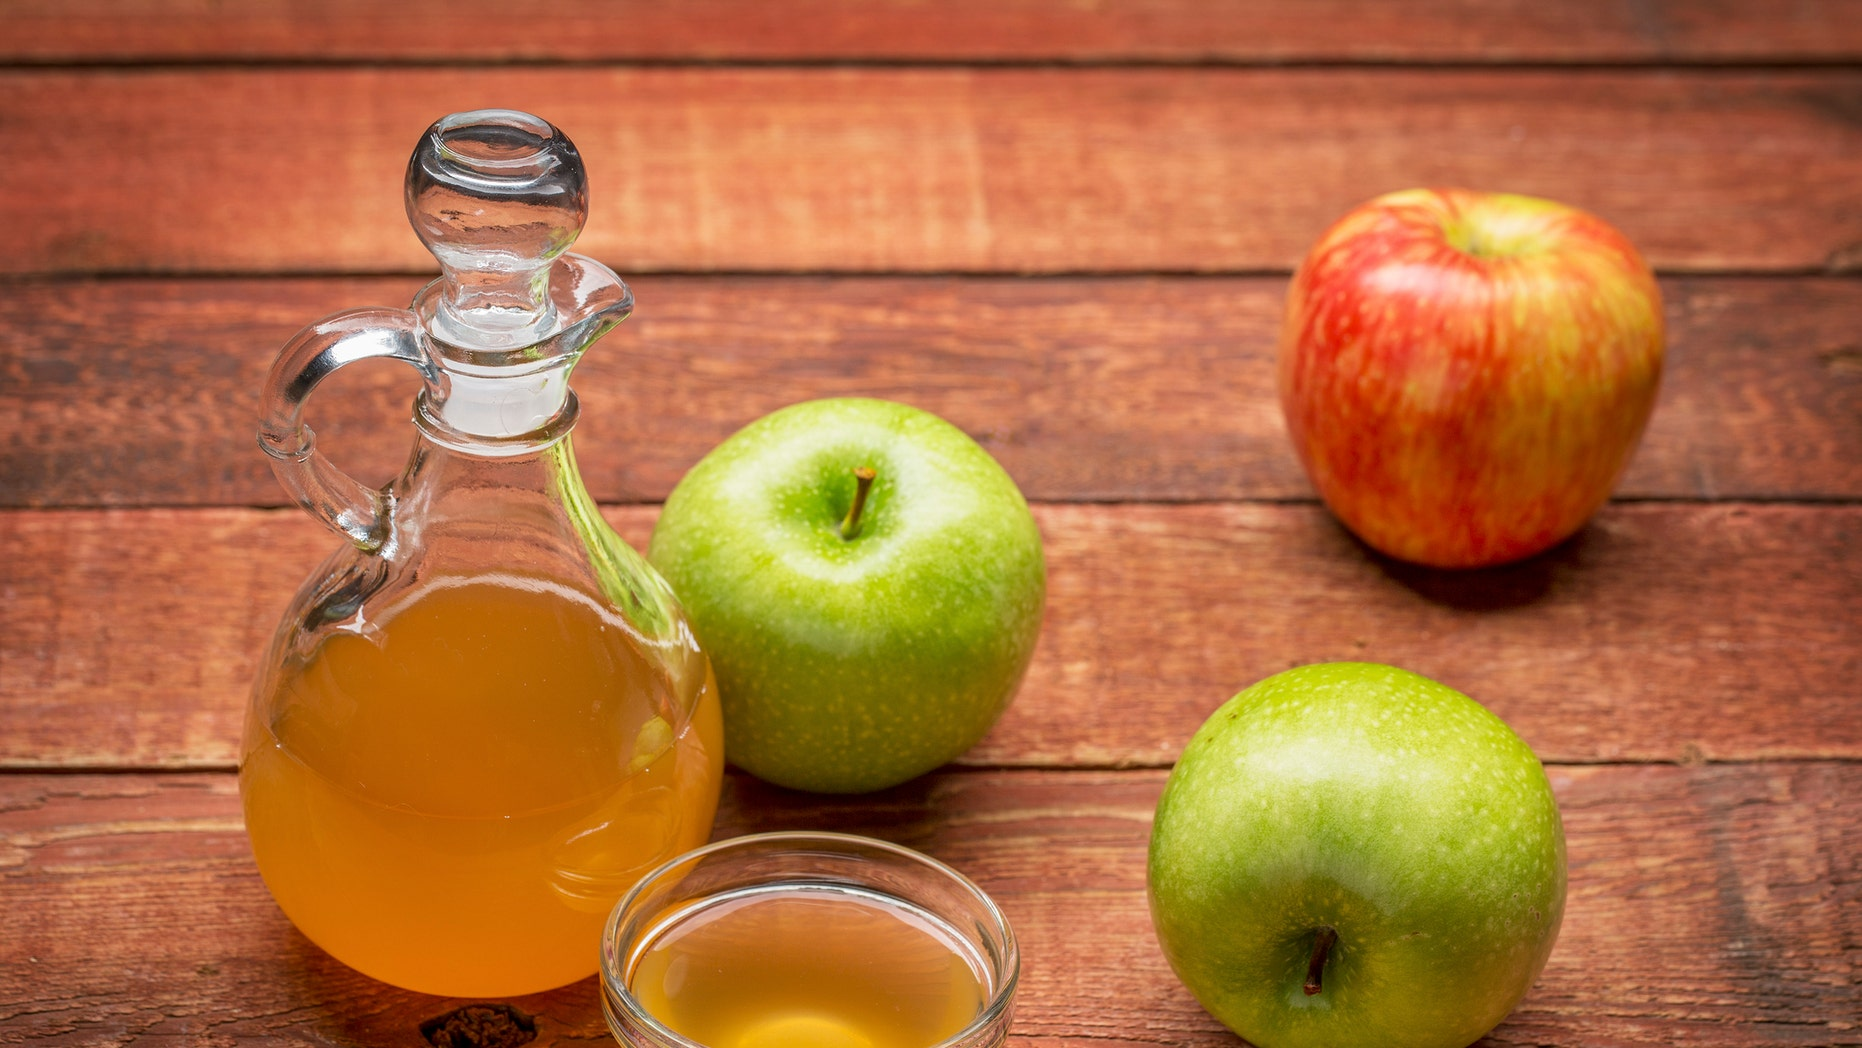 unfiltered, raw apple cider vinegar with mother - a cruet with a small glass  bowl surrounded by fresh  apples on rustic wood